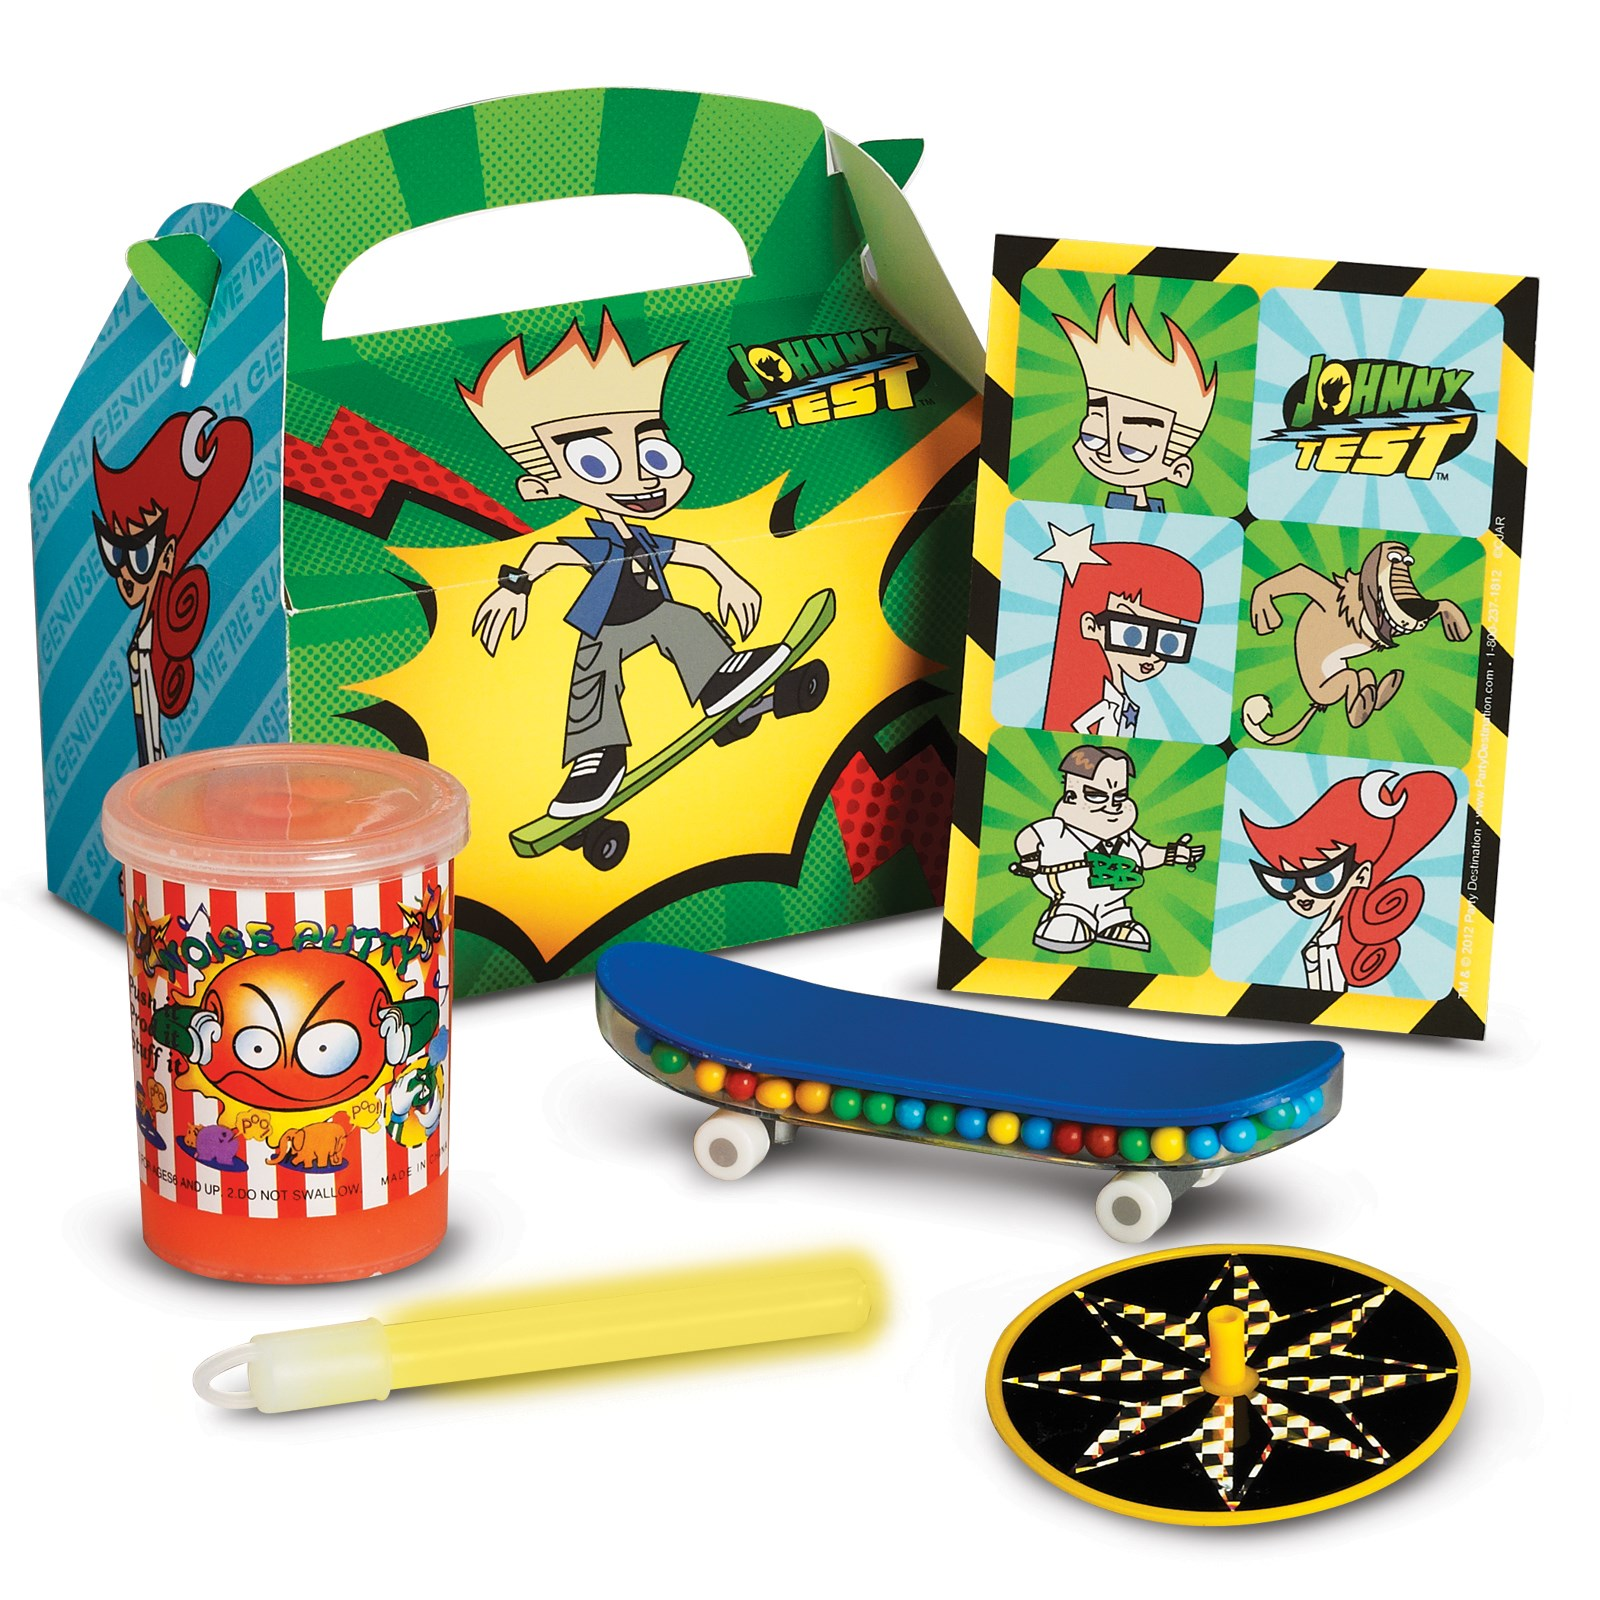 Johnny Test Filled Party Favor Box